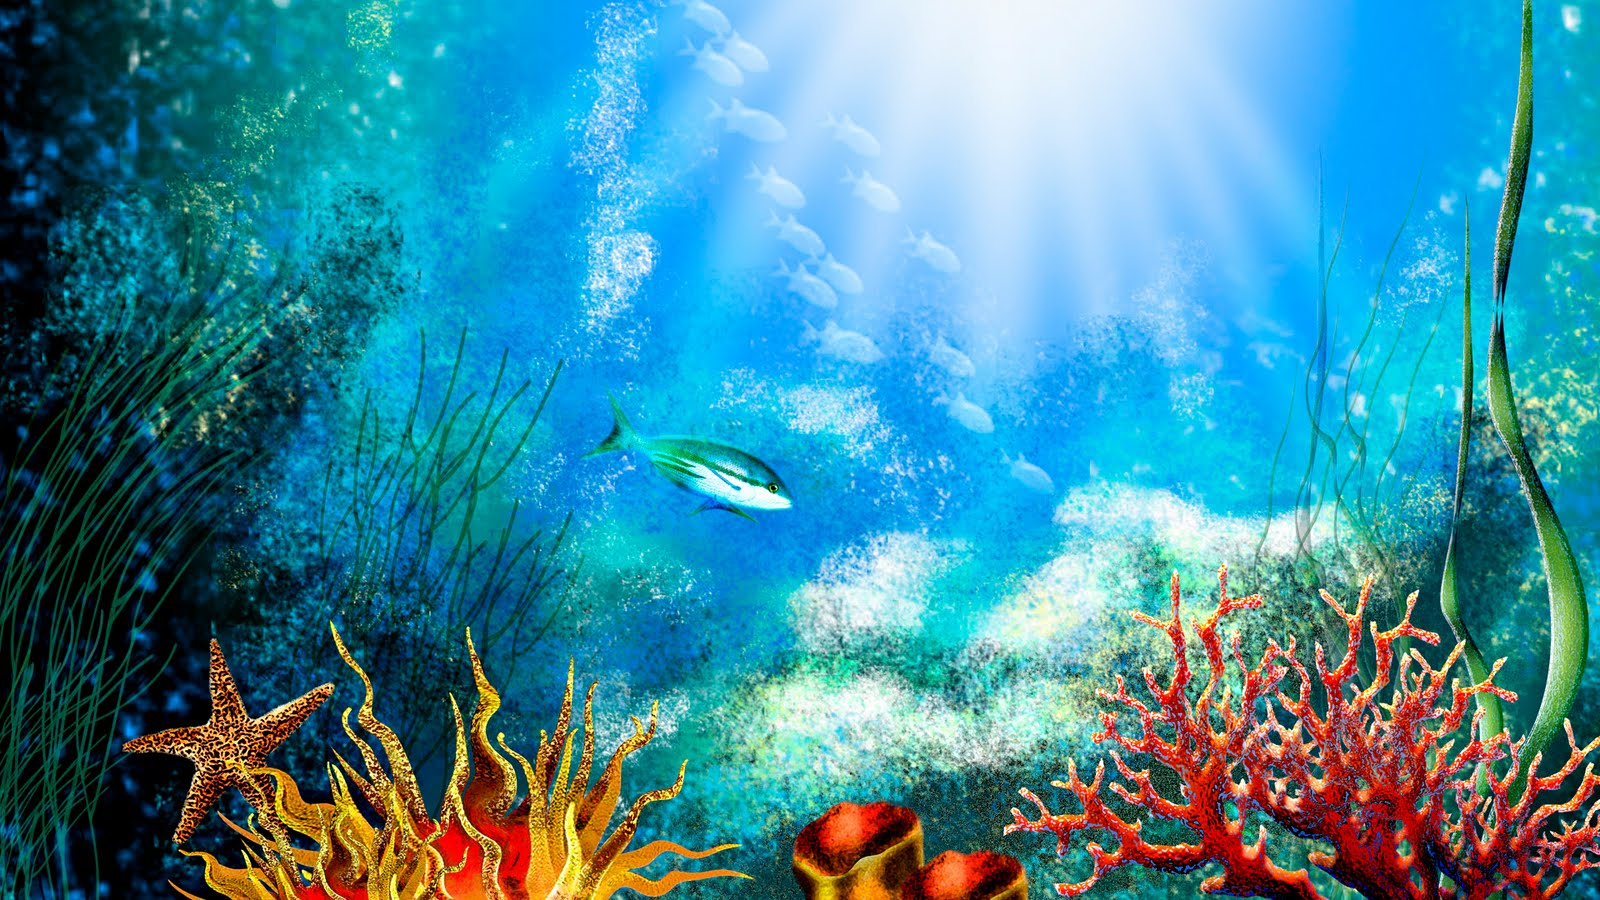 Aquarium screensaver fish tank 1080p hd - Desktop Aquarium Hd Wallpaper The Wallpaper Database